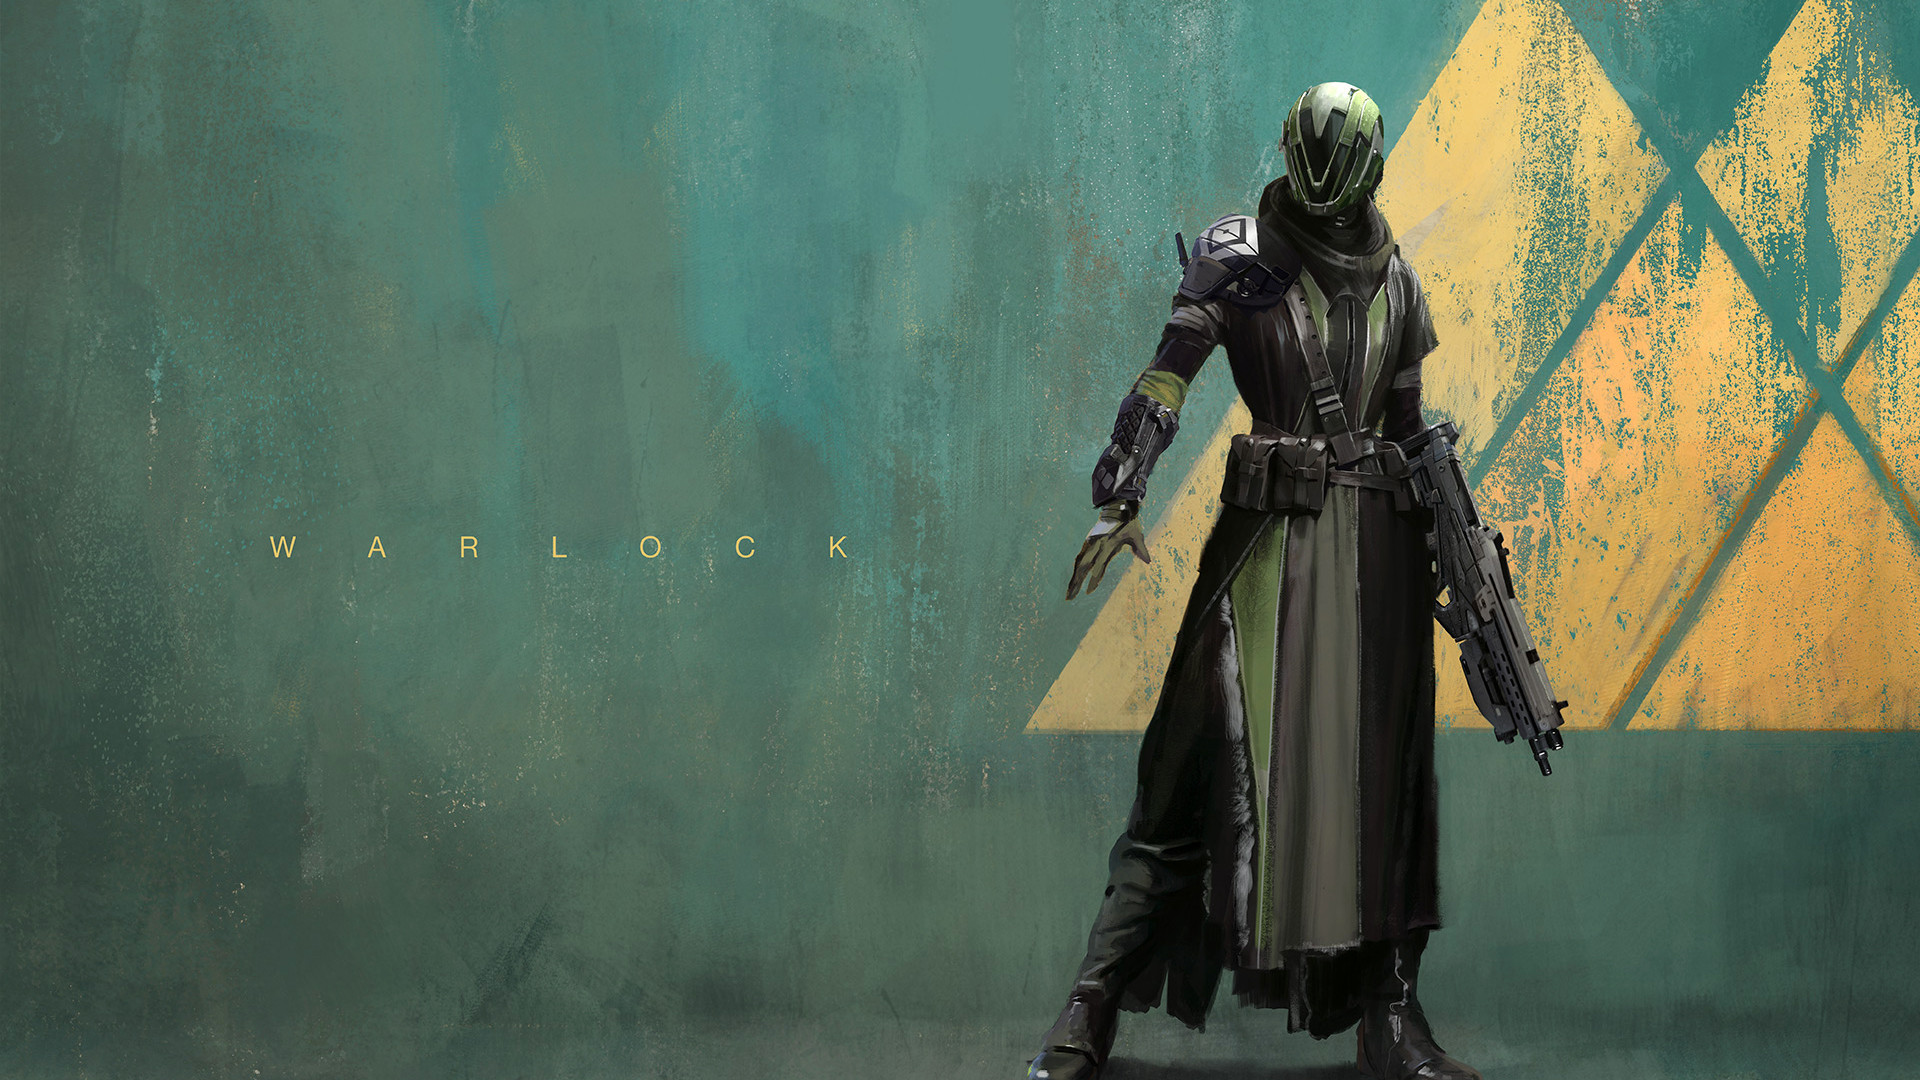 Res: 1920x1080, WallpapersWide Destiny Wallpapers HD Backgrounds WallpapersInk Destiny HD  Wallpapers Backgrounds Wallpaper